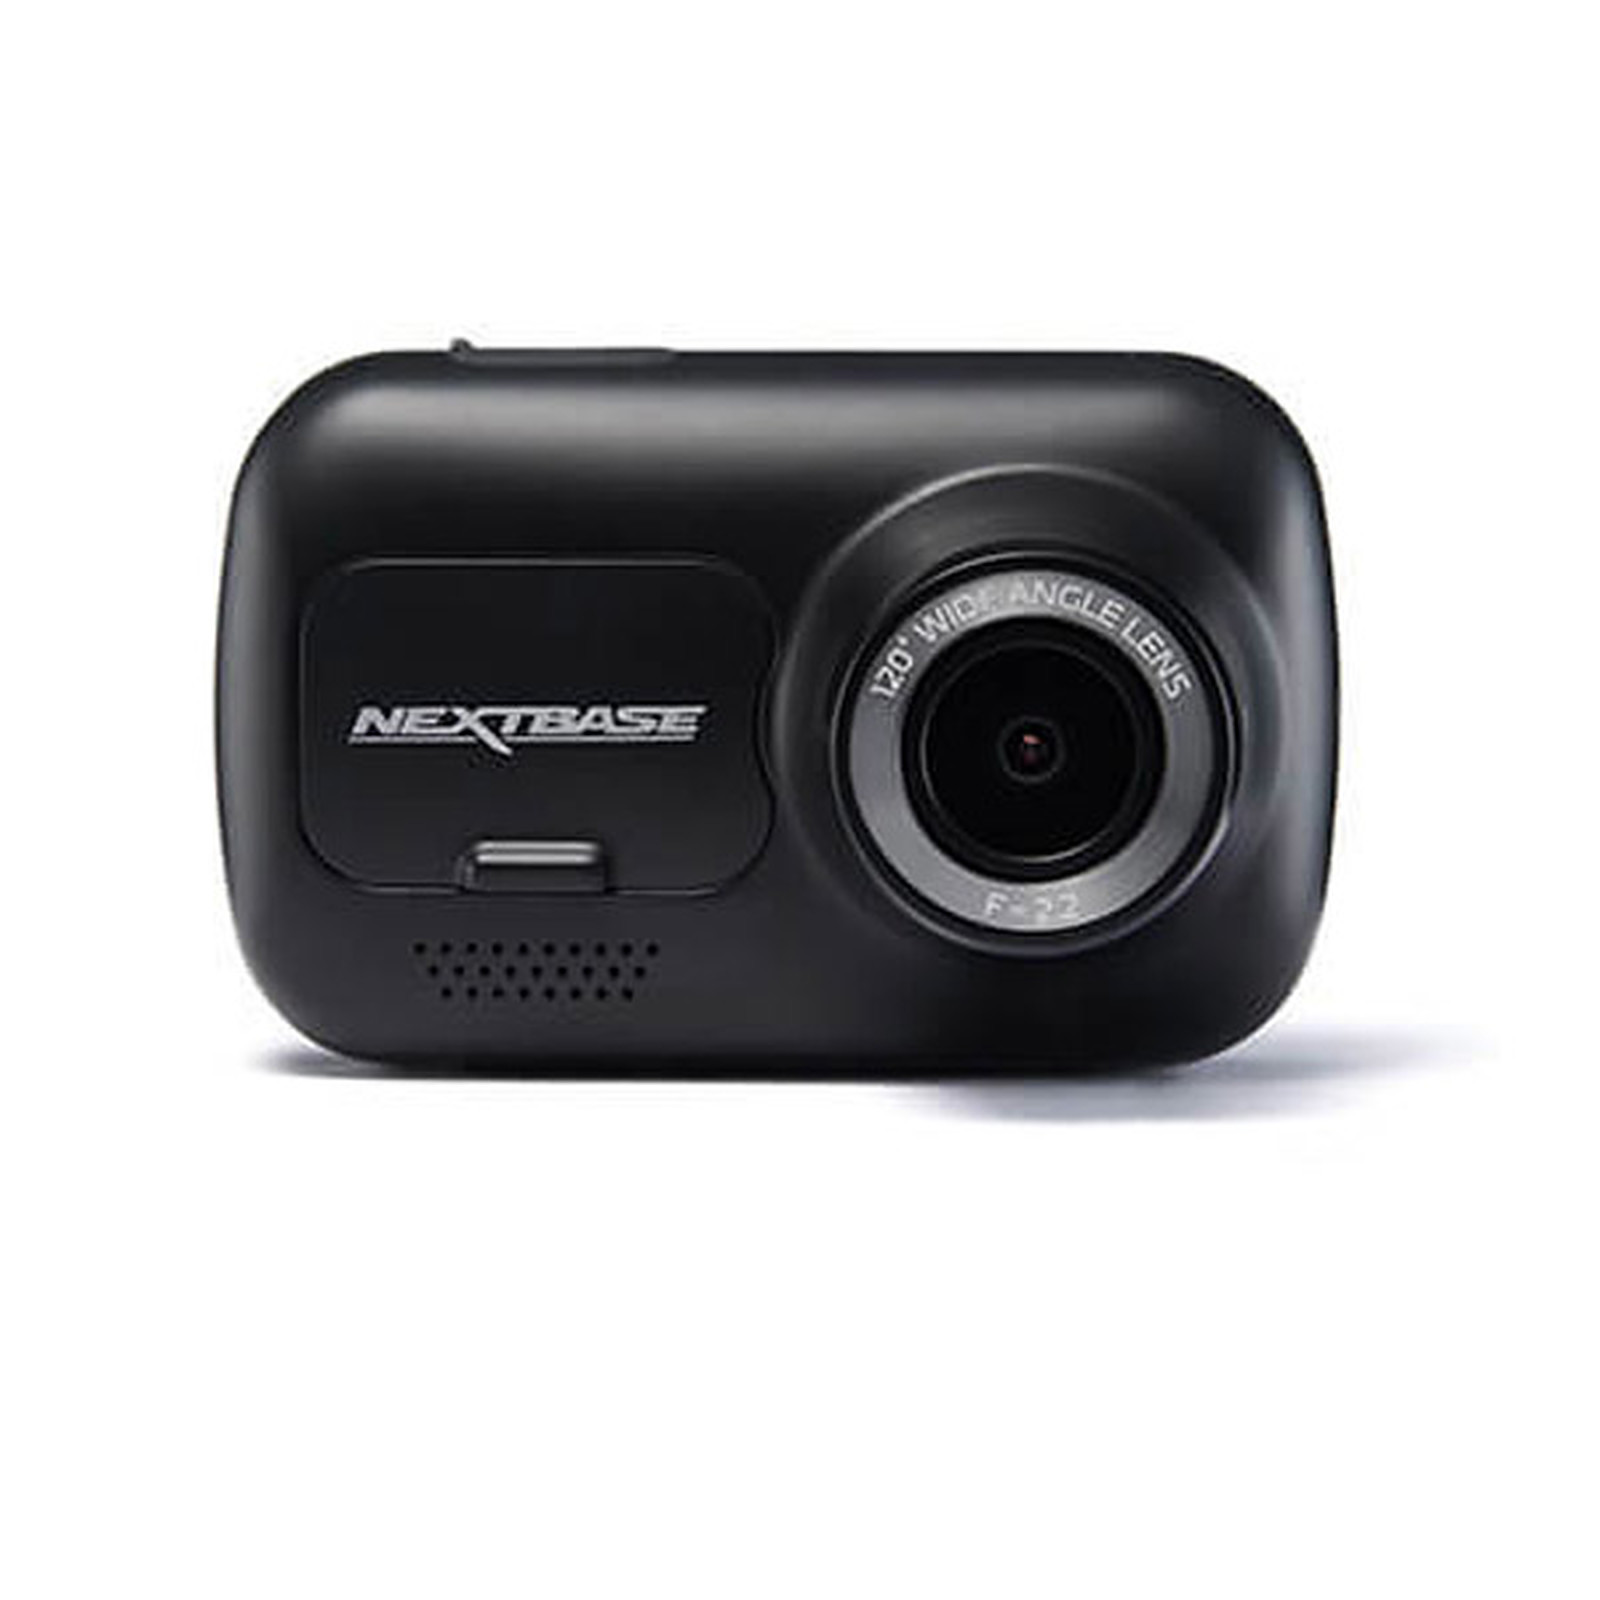 Next Base DashCam 122